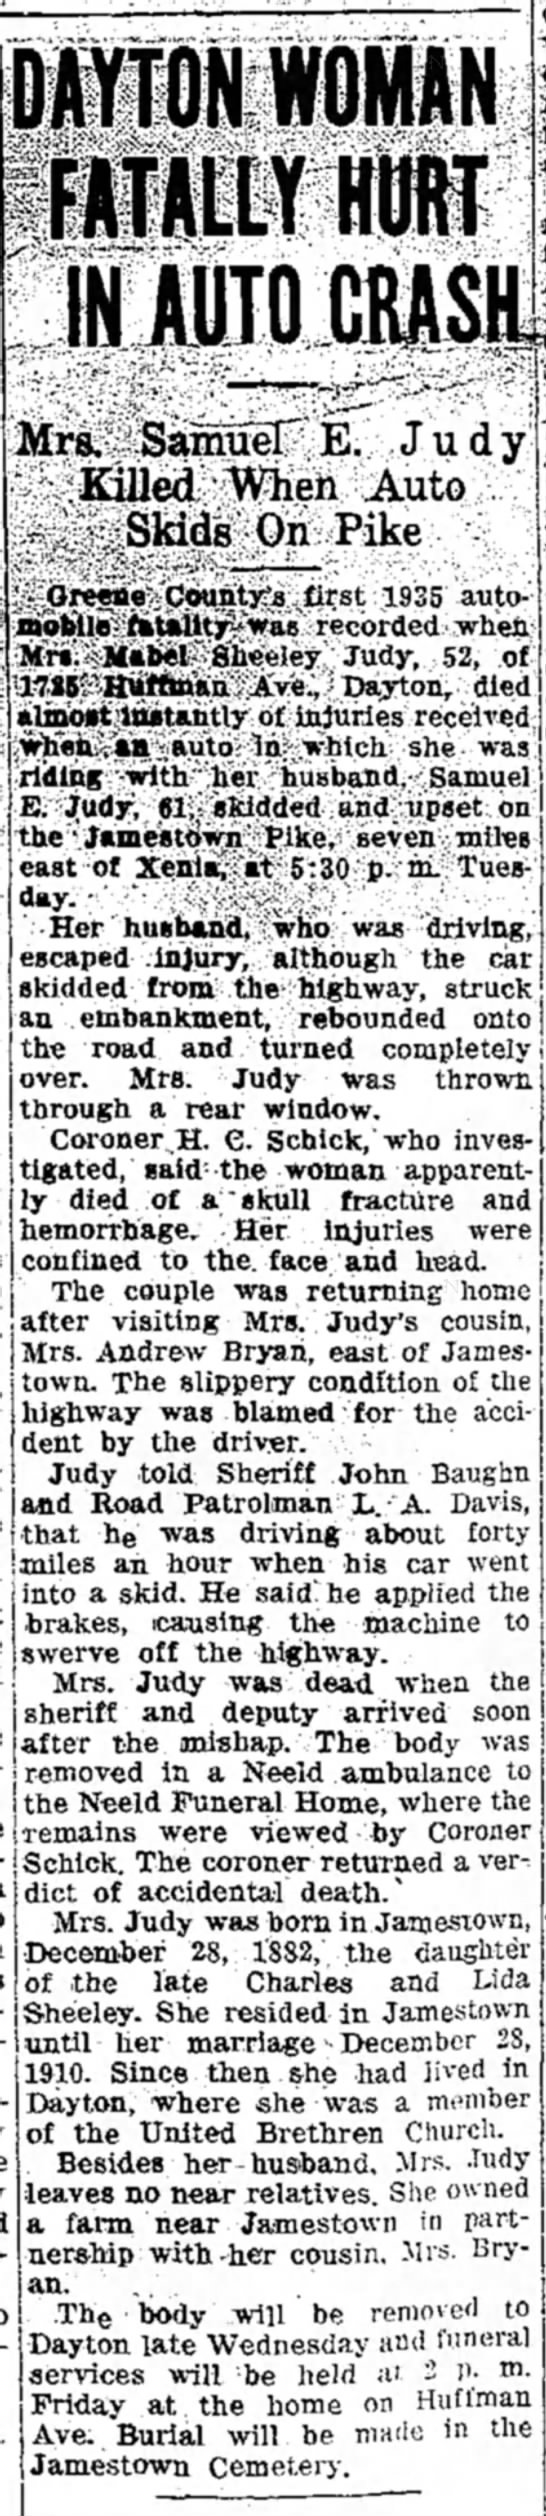 Mabel C (Sheley) Judy newspaper death notice - ram WOMAN FUTALLY HURT IN AUTO CRASH! Mrs....